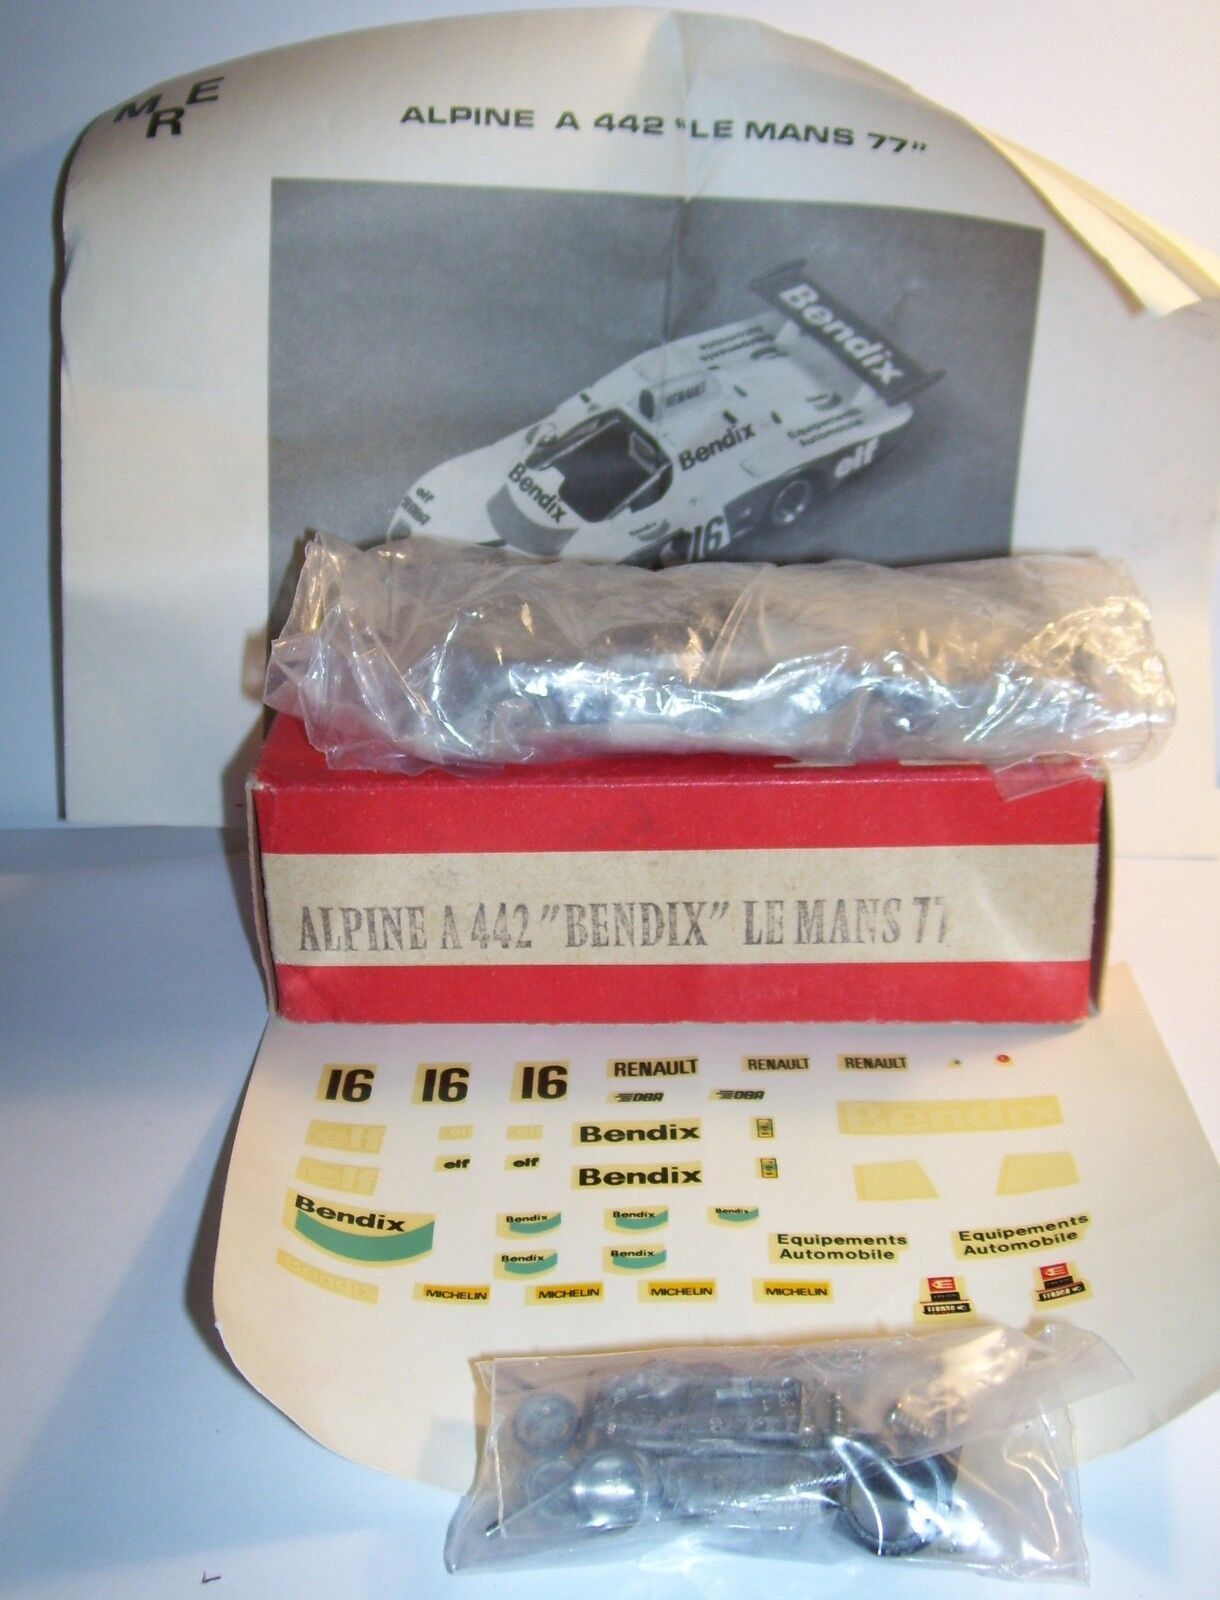 RARE KIT METAL MRE RENAULT ALPINE A 442 BENDIX LE MANS 77 1 43 IN BOX